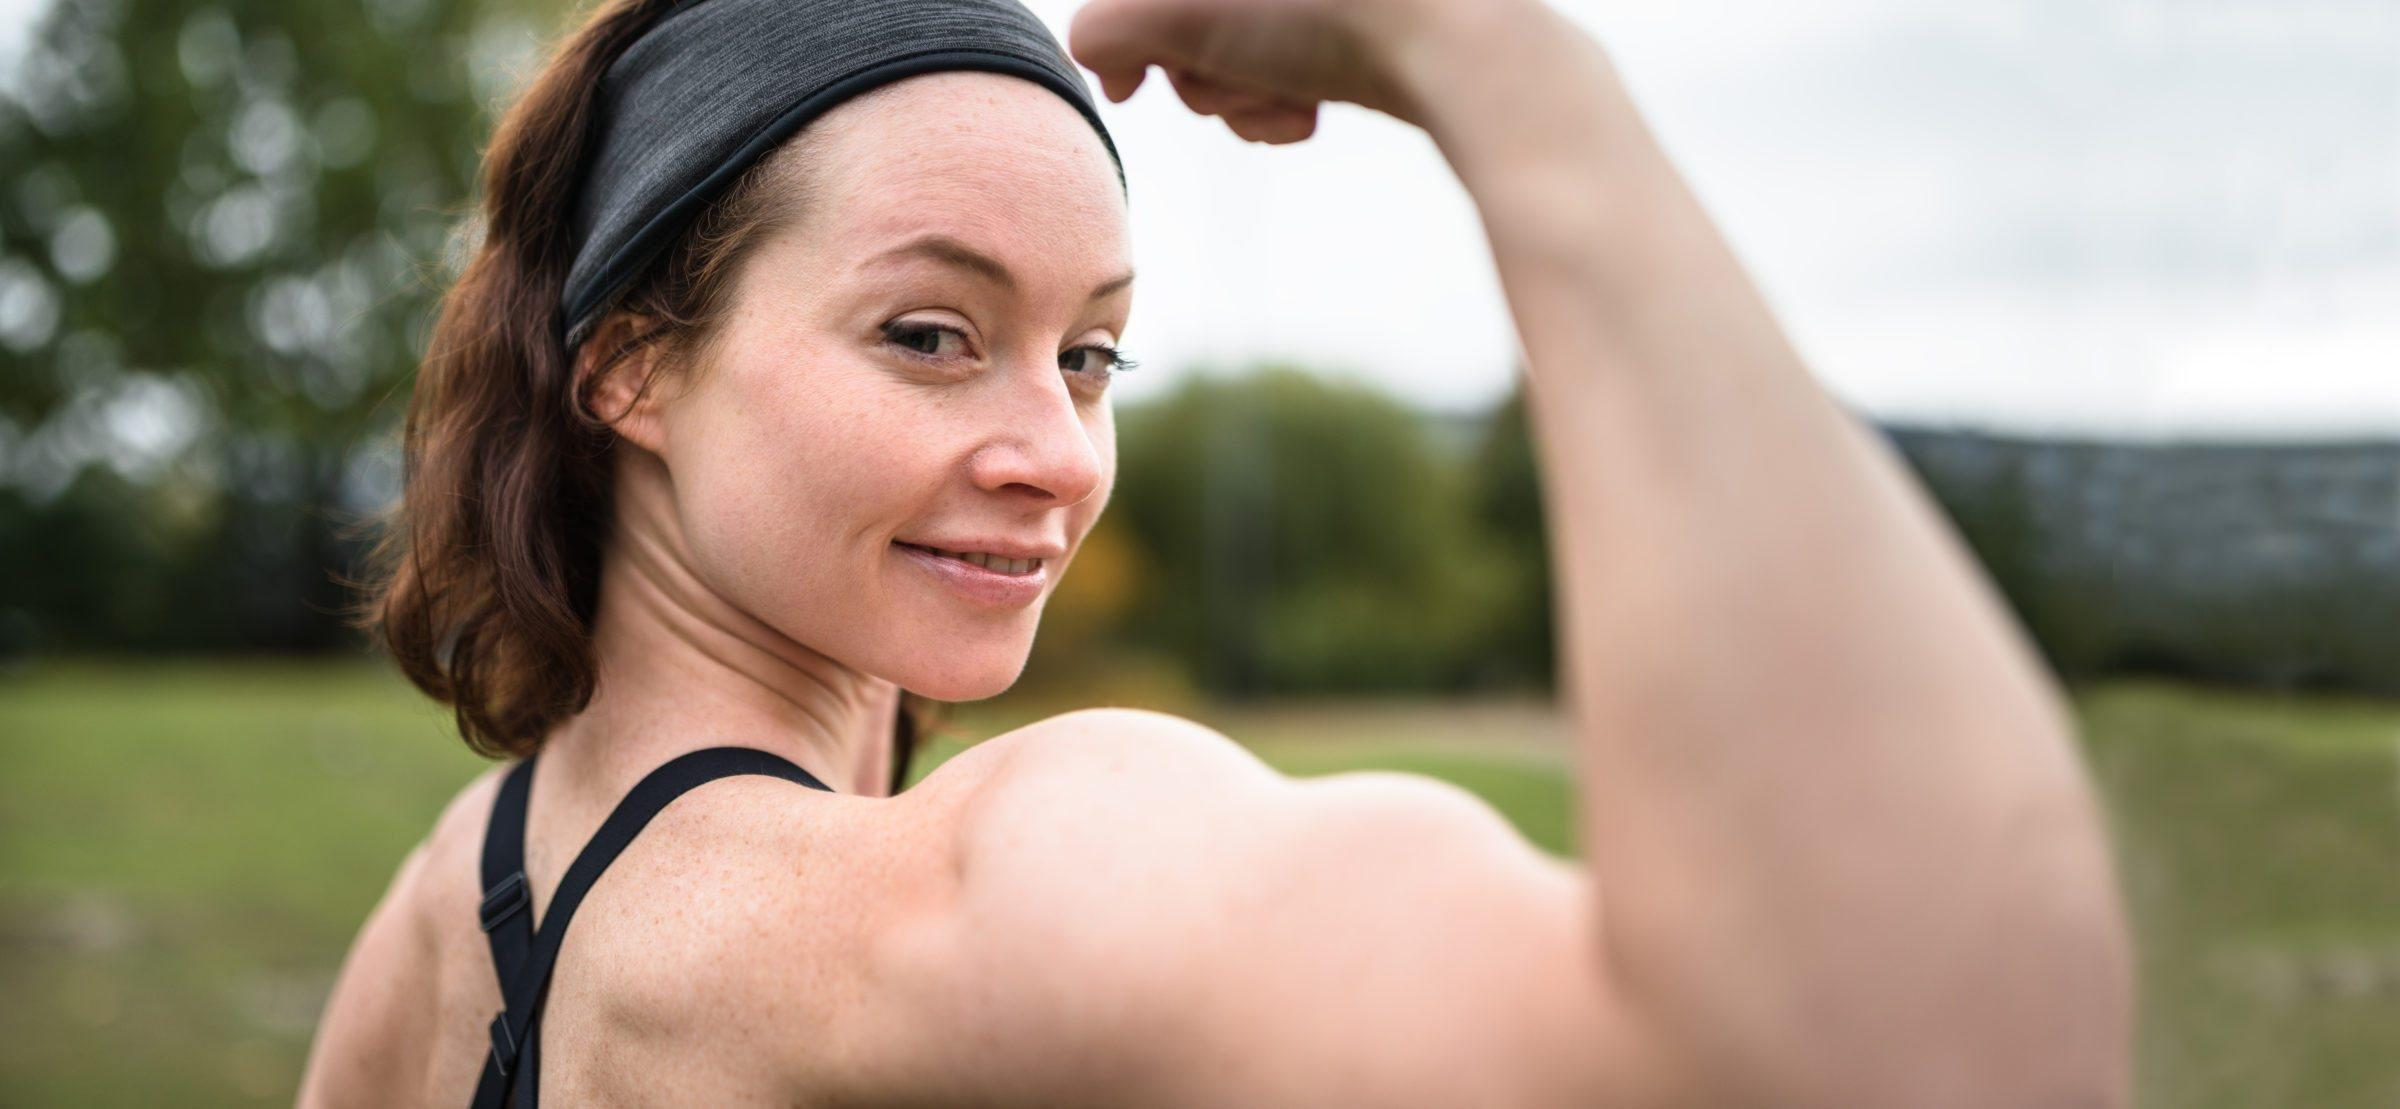 How To Gain Weight On Low Carb Or Keto